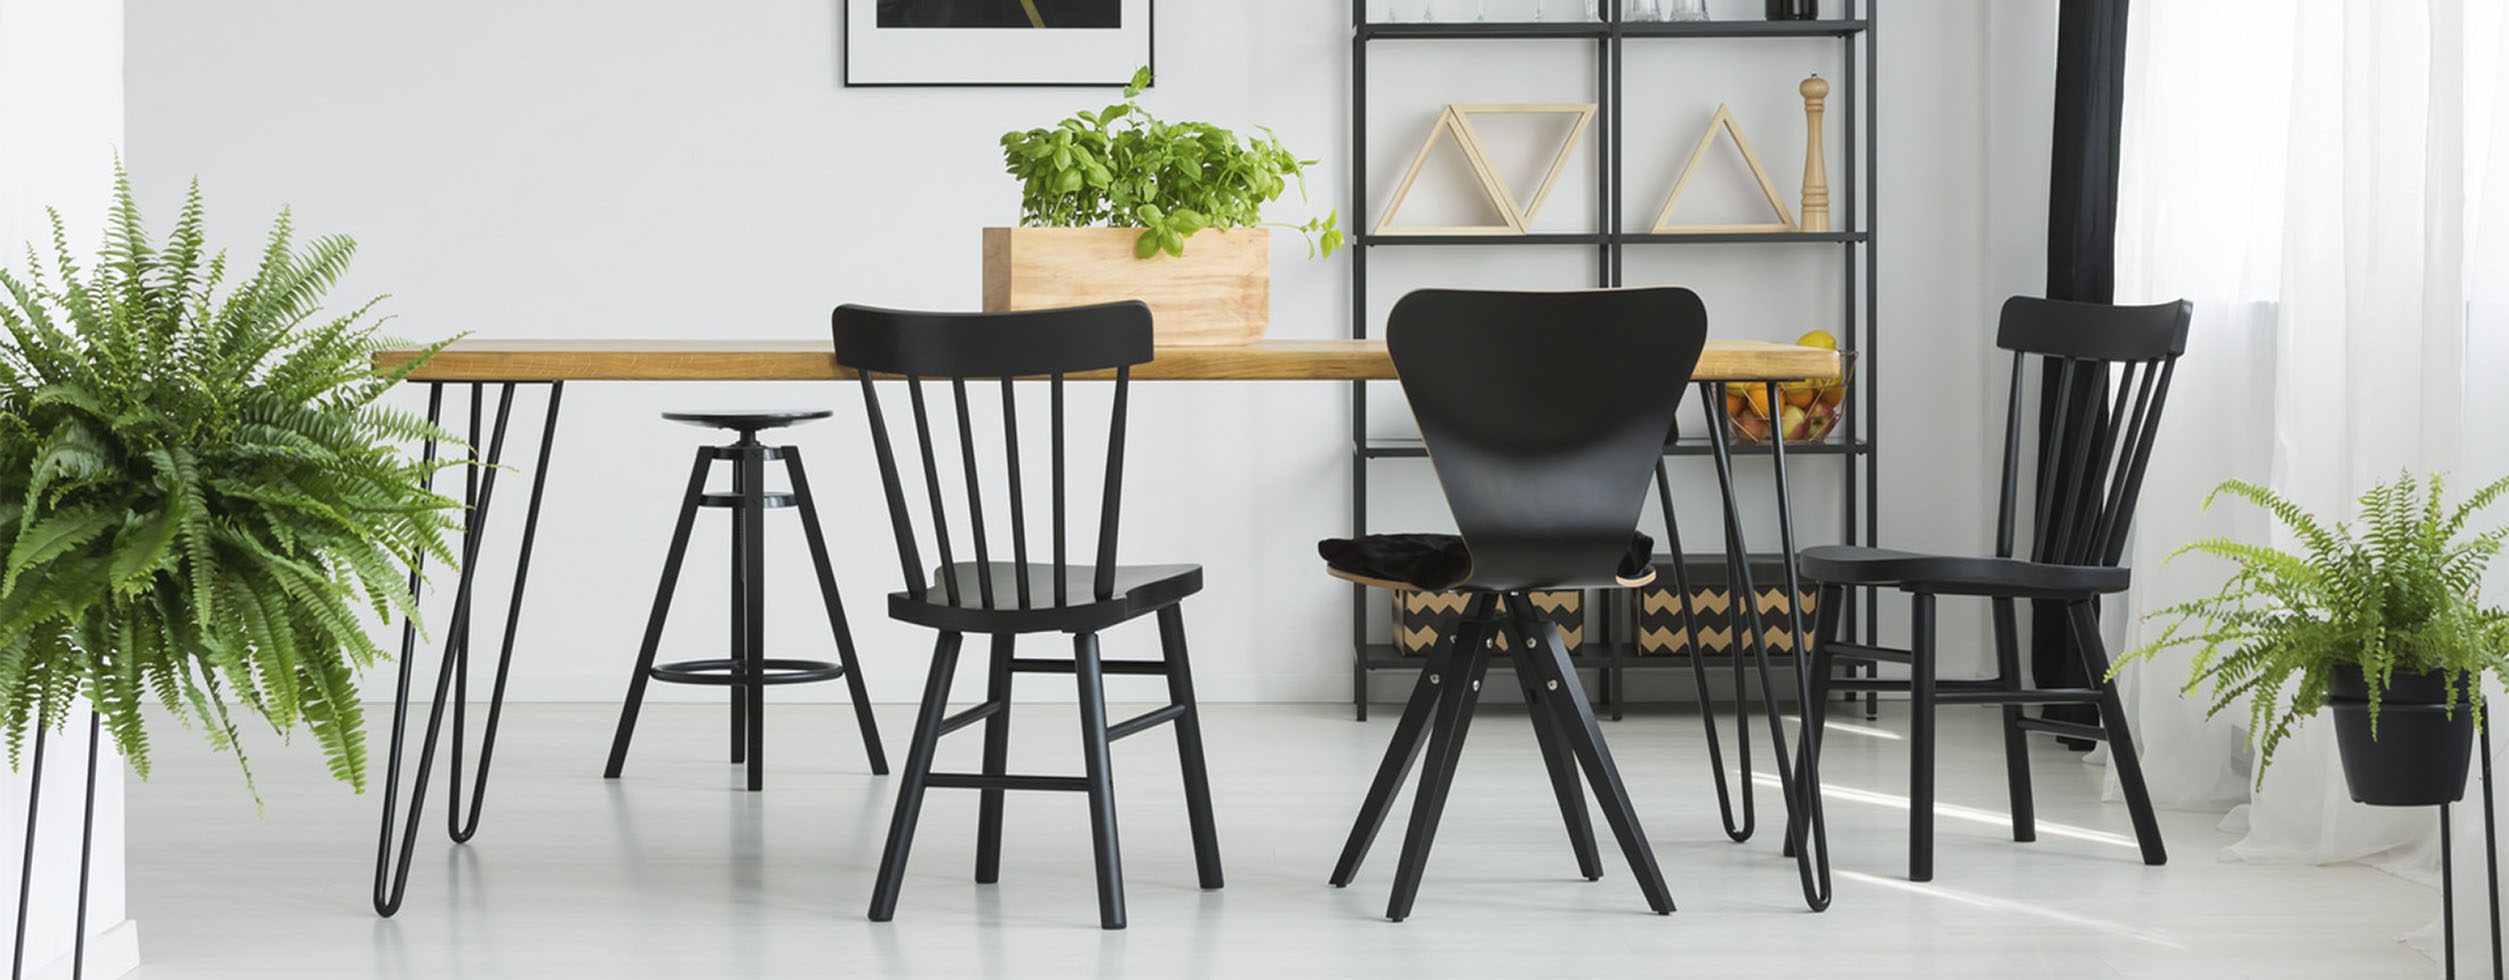 Furniture Plus - Dining Chairs - Dining Room